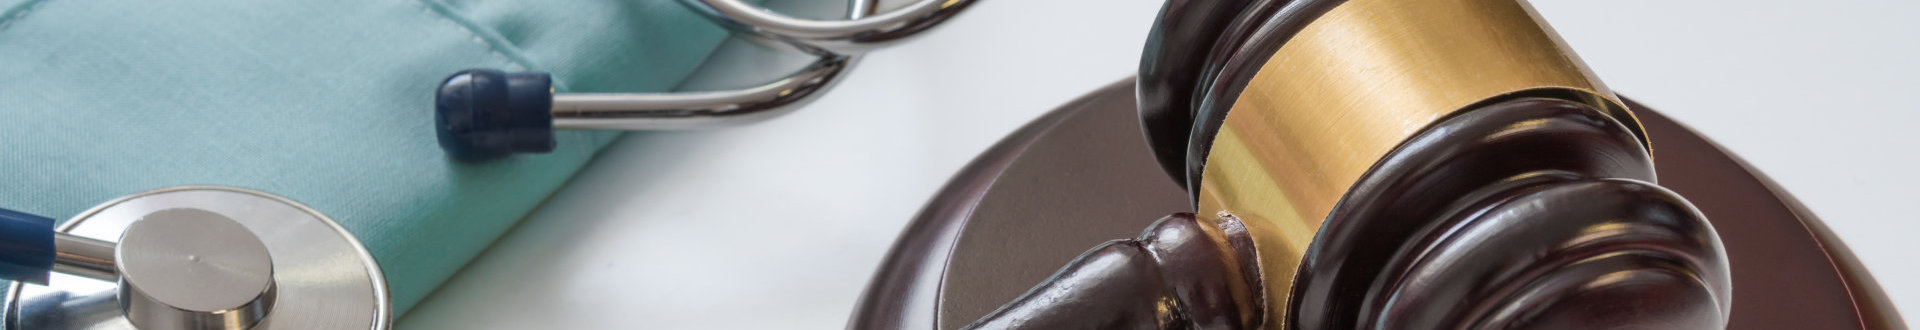 Gavel and stethoscope in background.